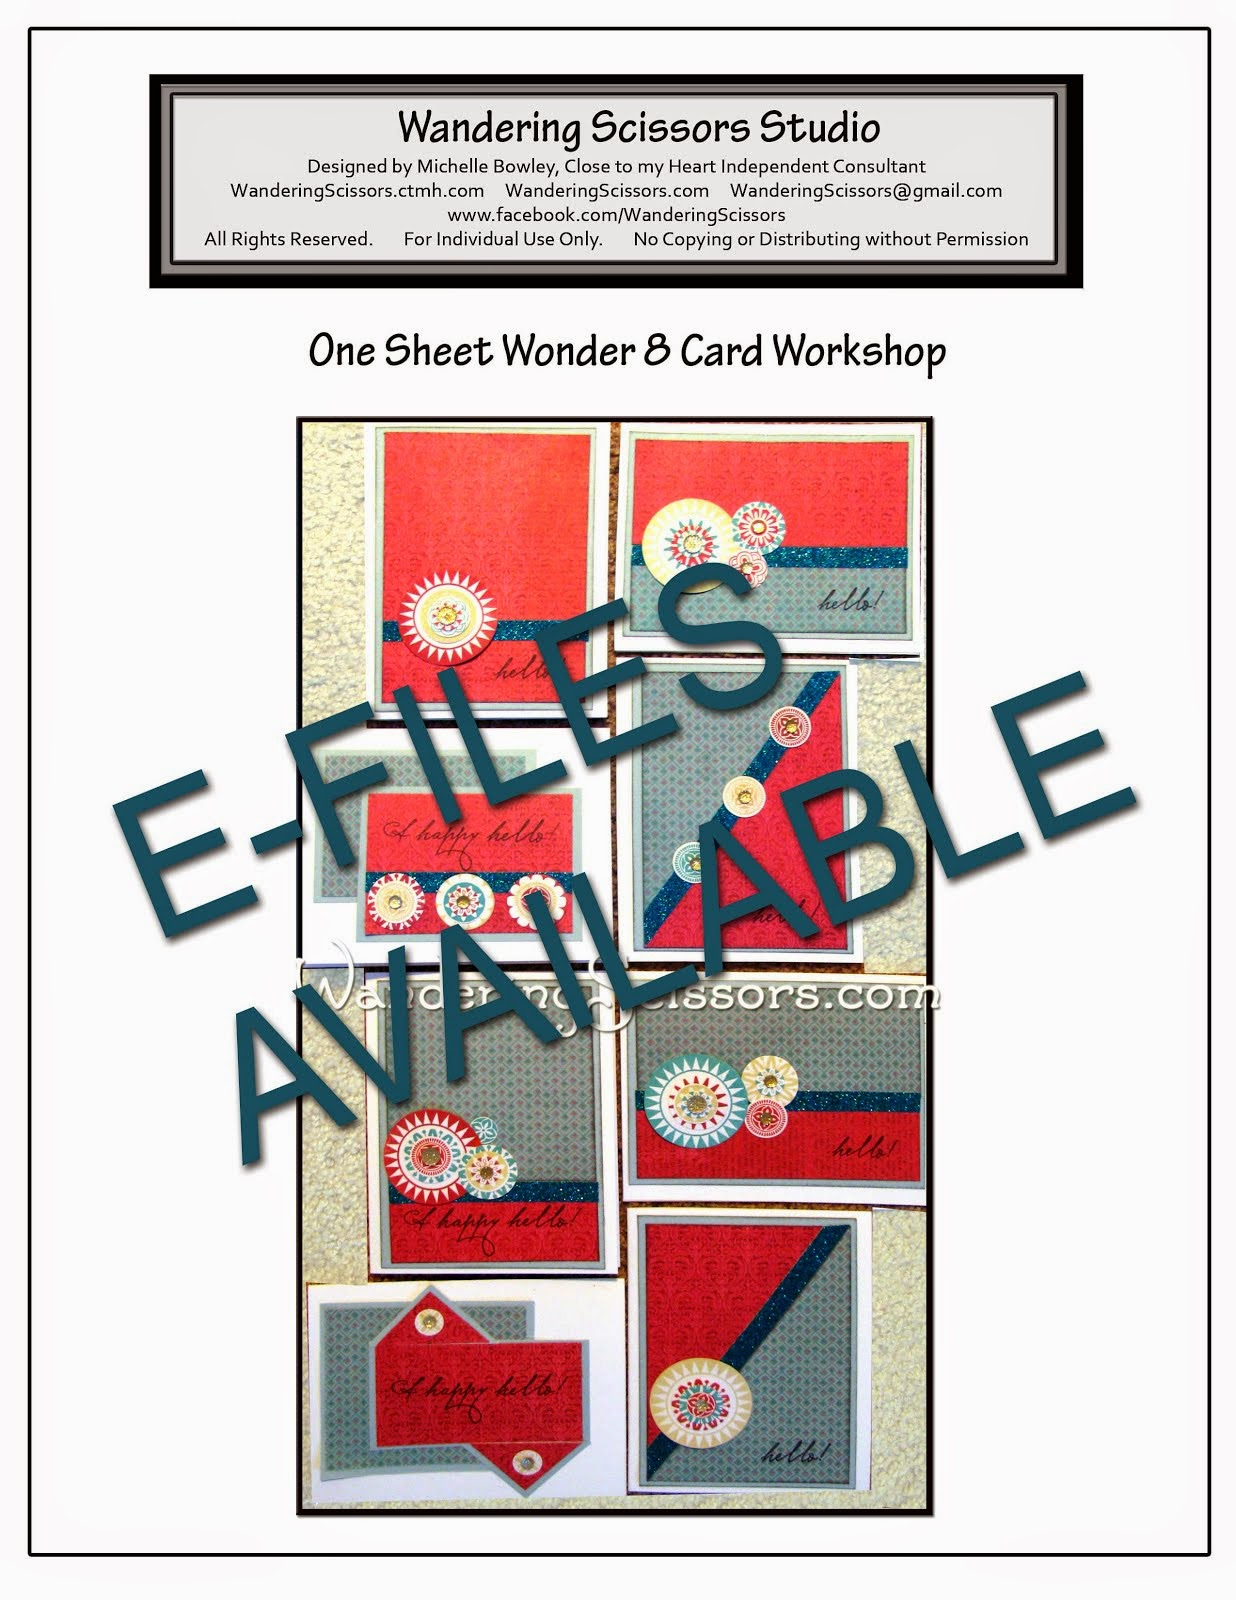 ONE SHEET WONDER 8 CARD WORKSHOP E-FILES